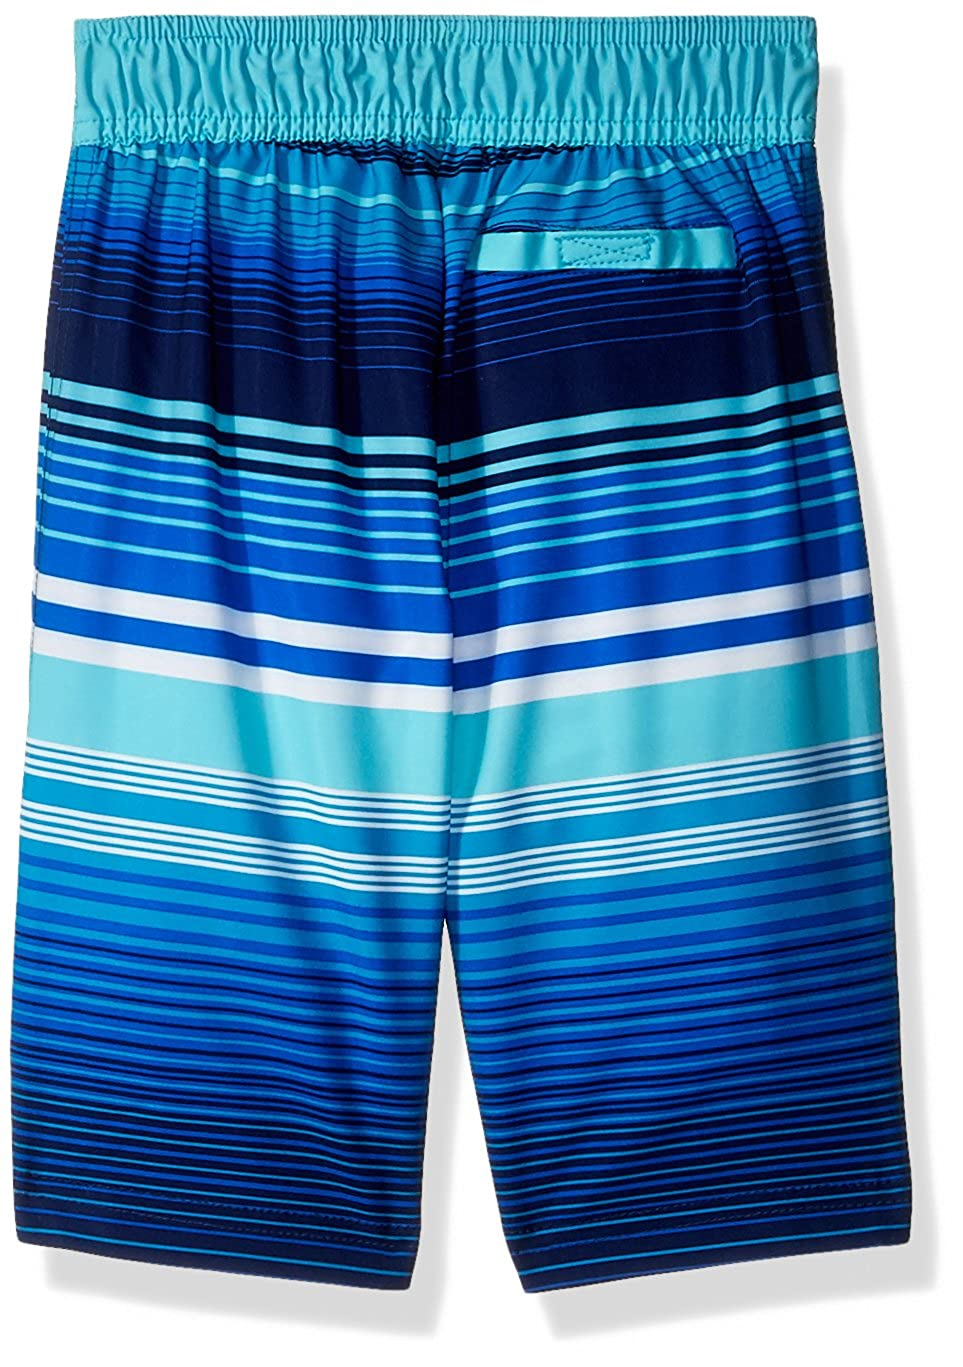 Free Country Boys Little Ripple Effects Print Board Shorts